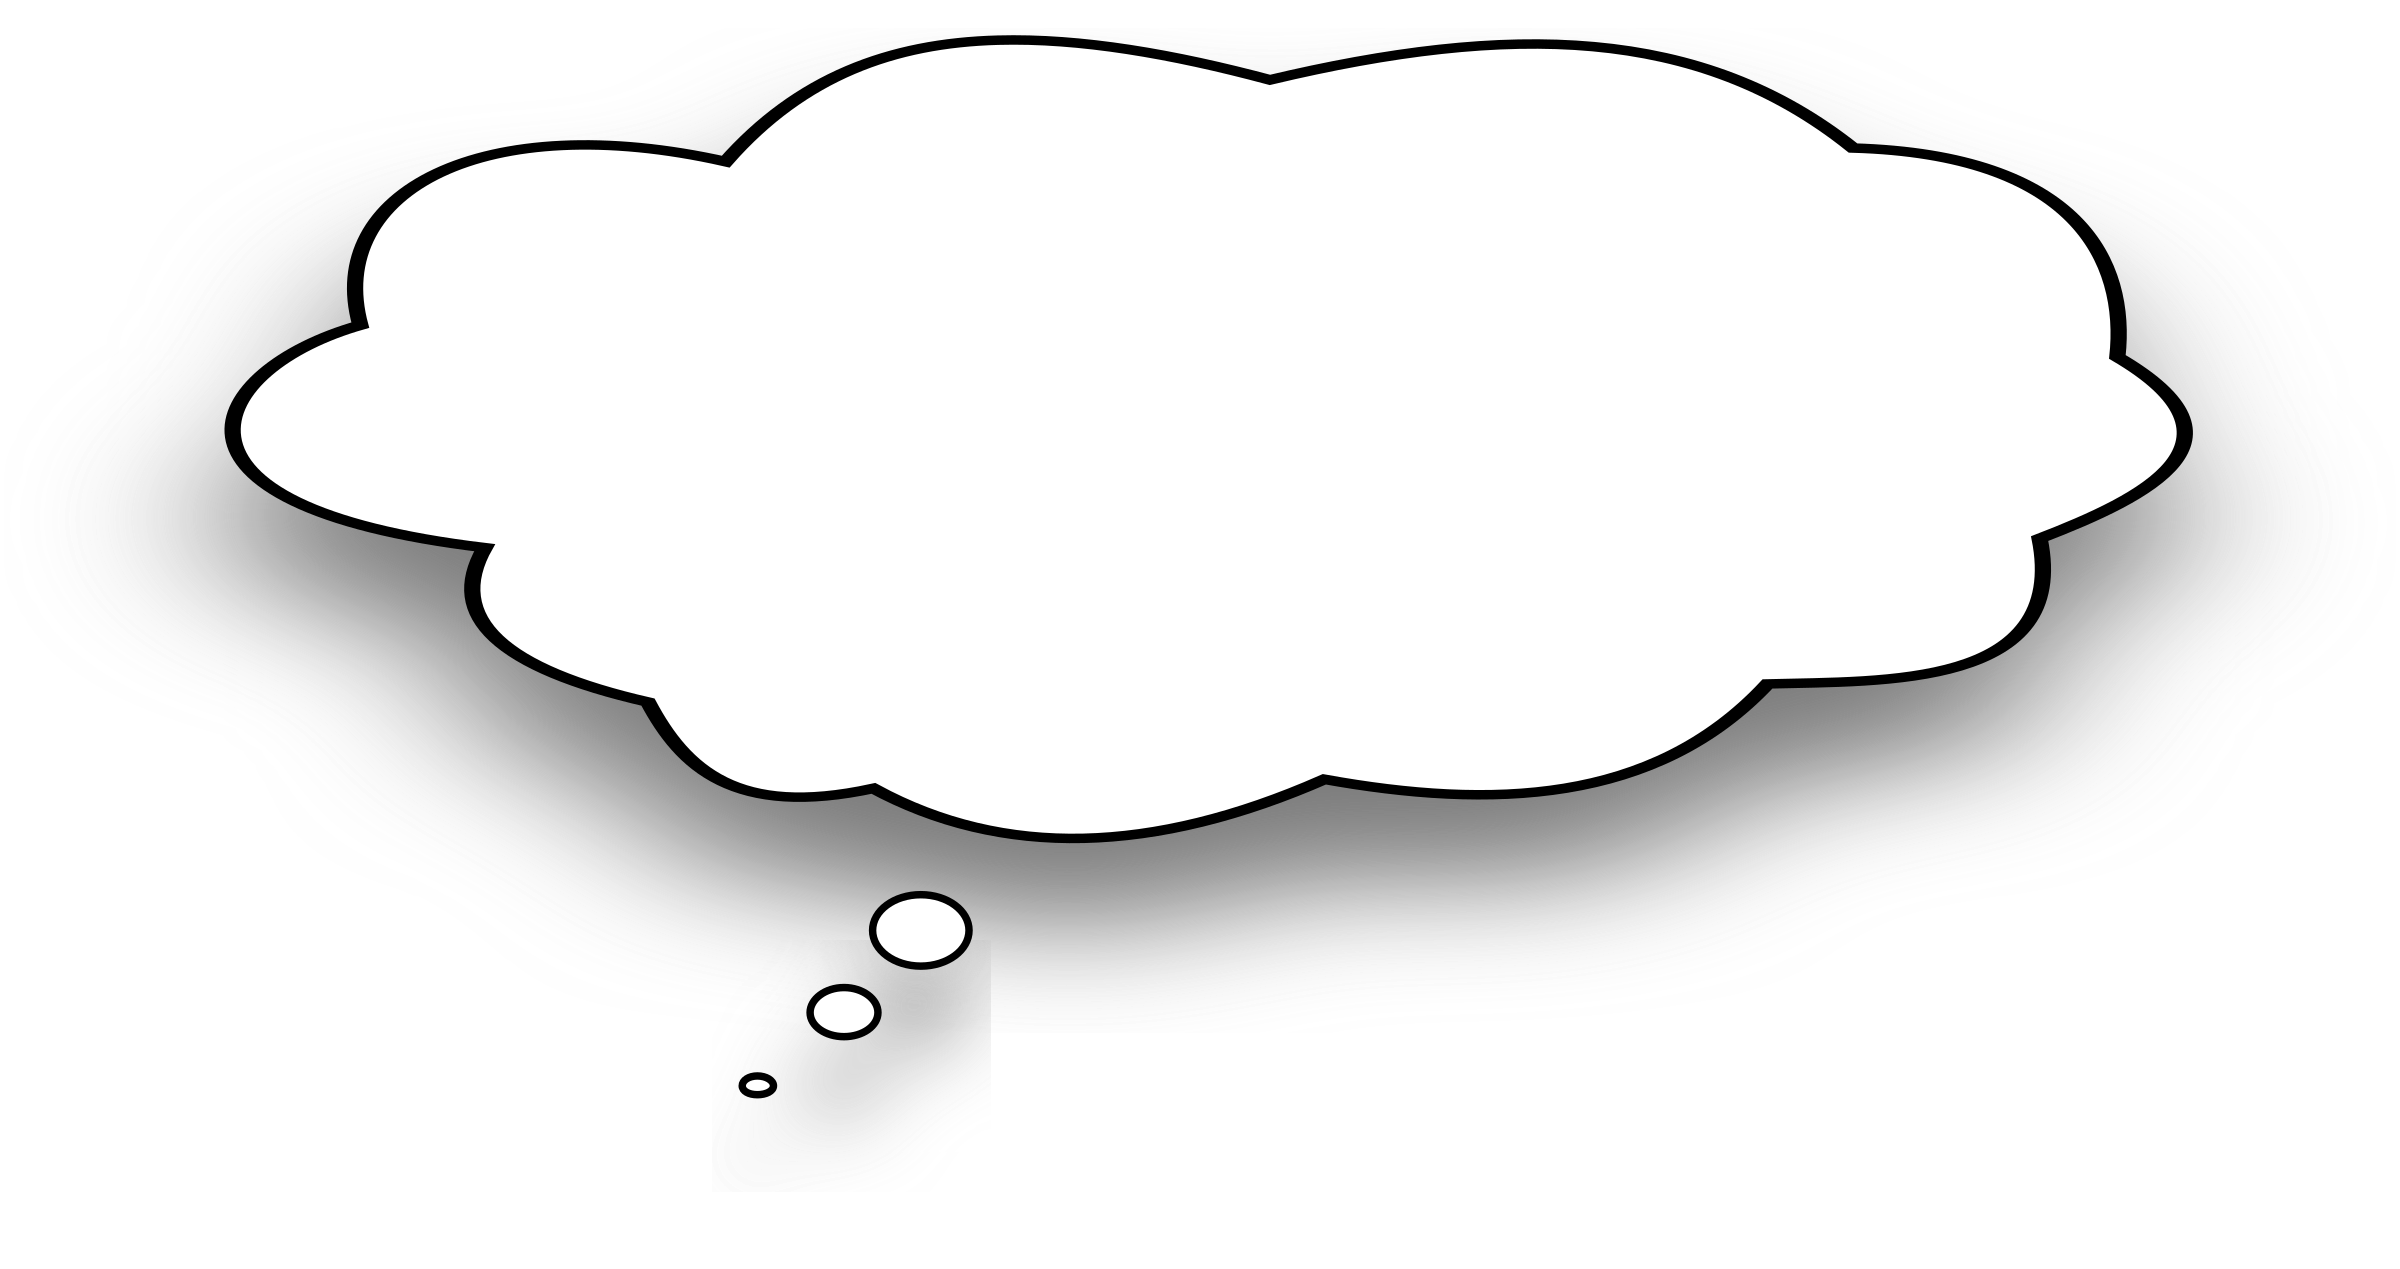 Thought big image png. Thoughts clipart speech bubble